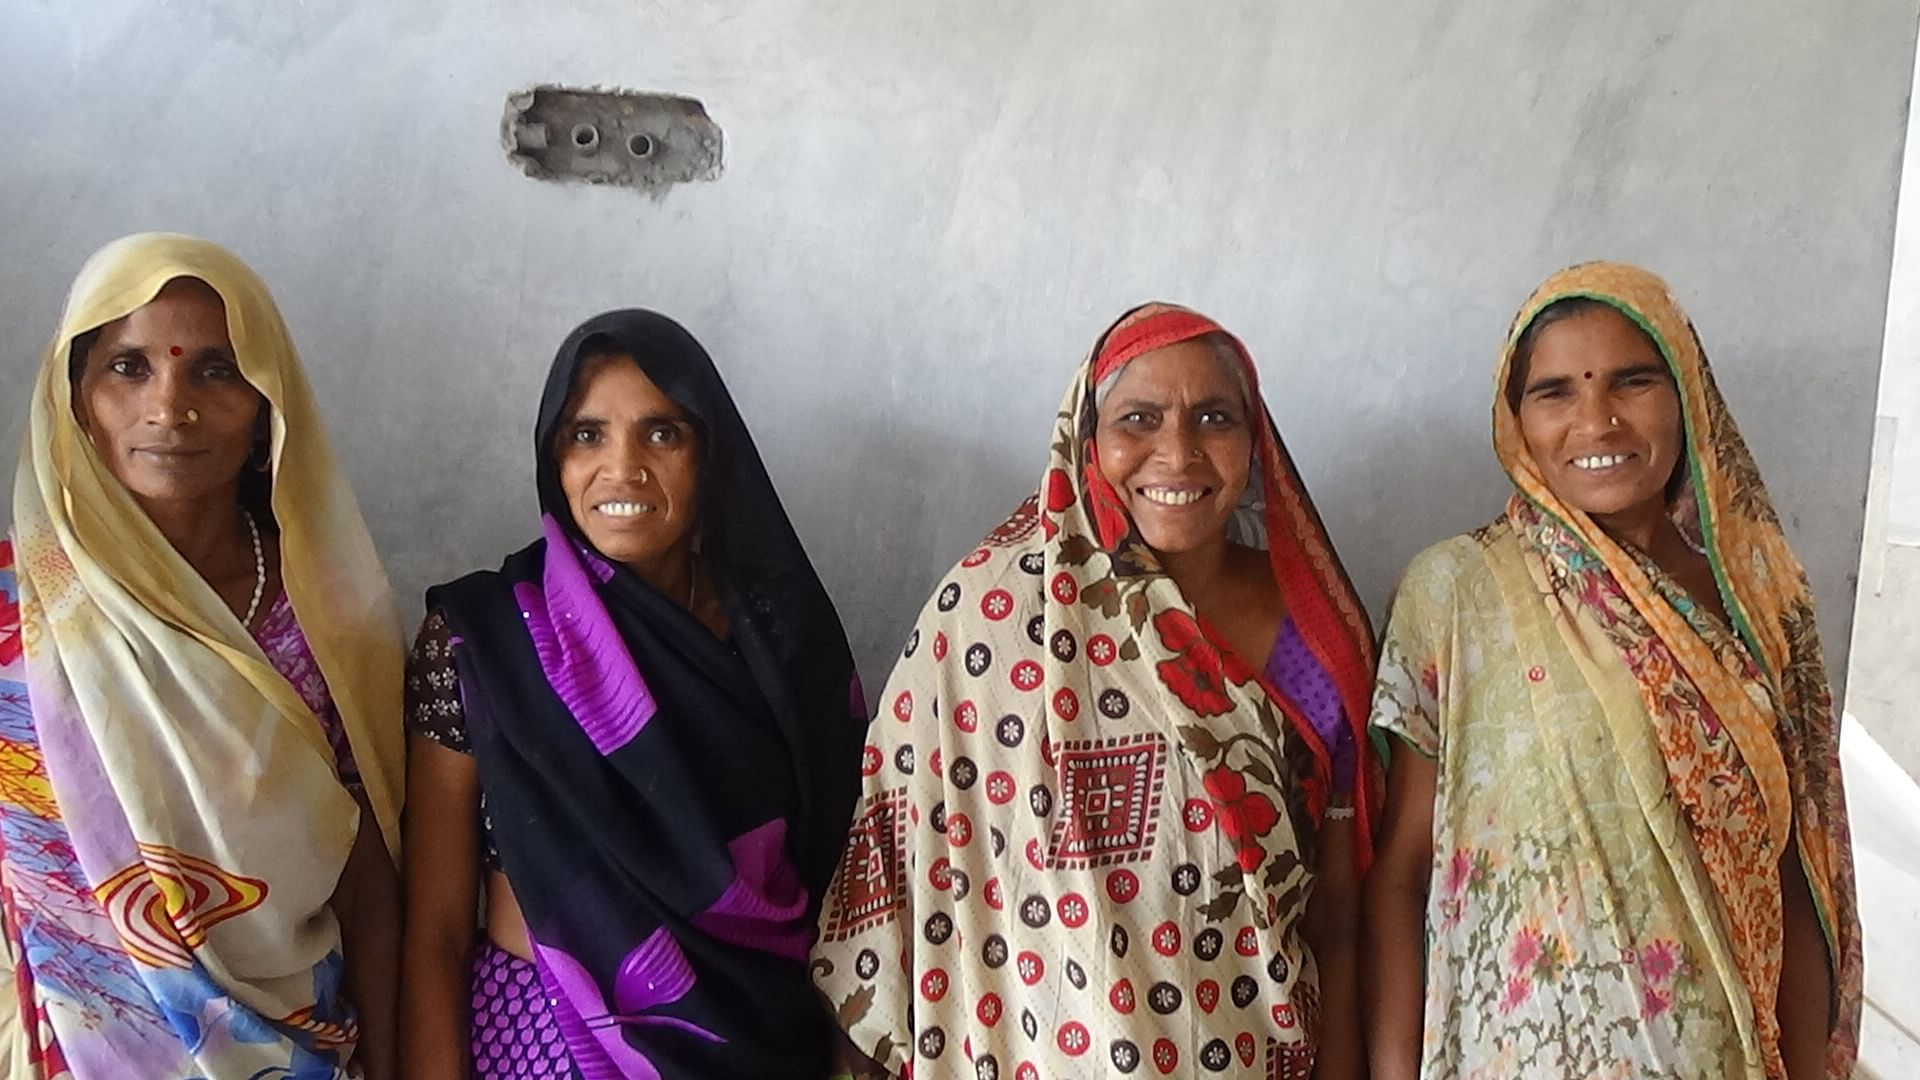 Gyanwati Devi (3rd from left) with her pardada pardadi SHG